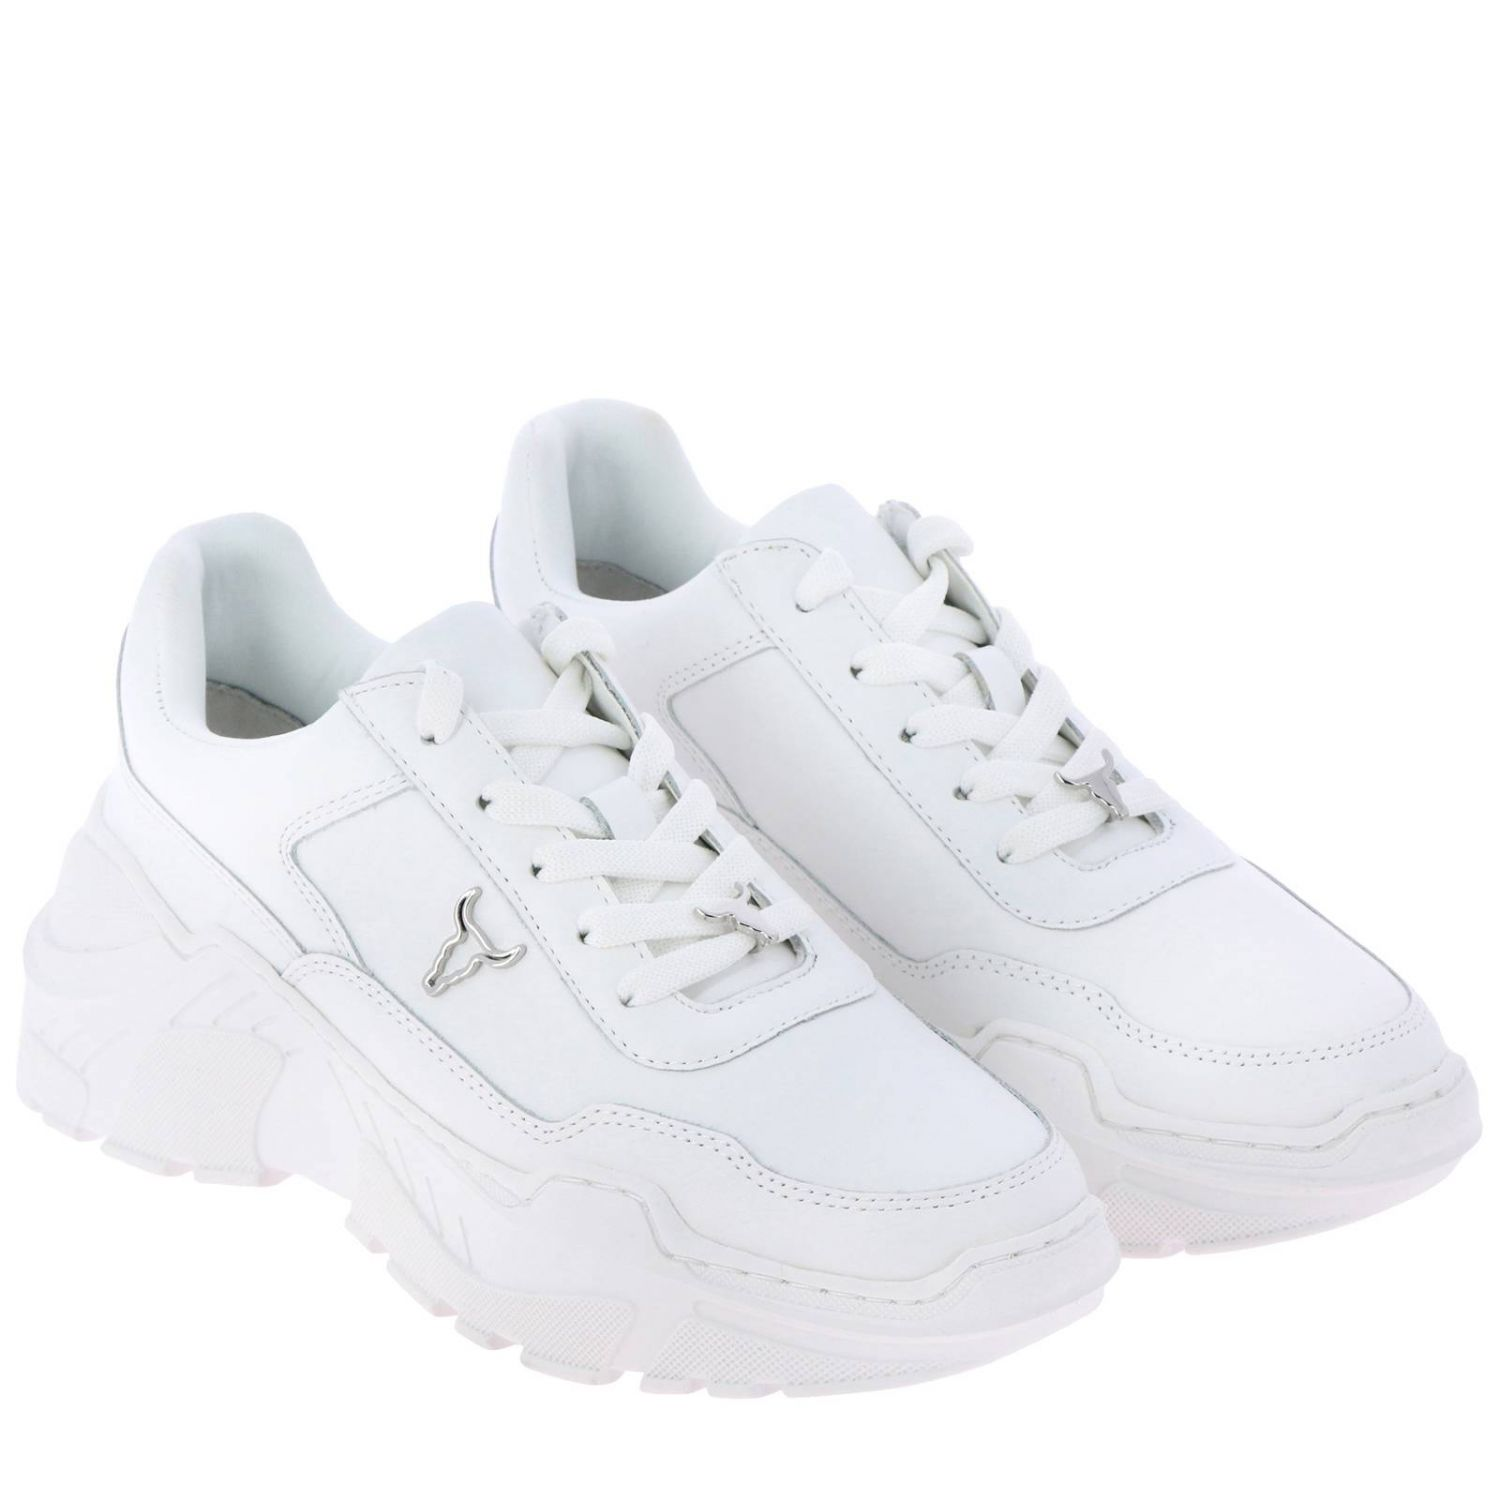 Sneakers women Windsorsmith white 2